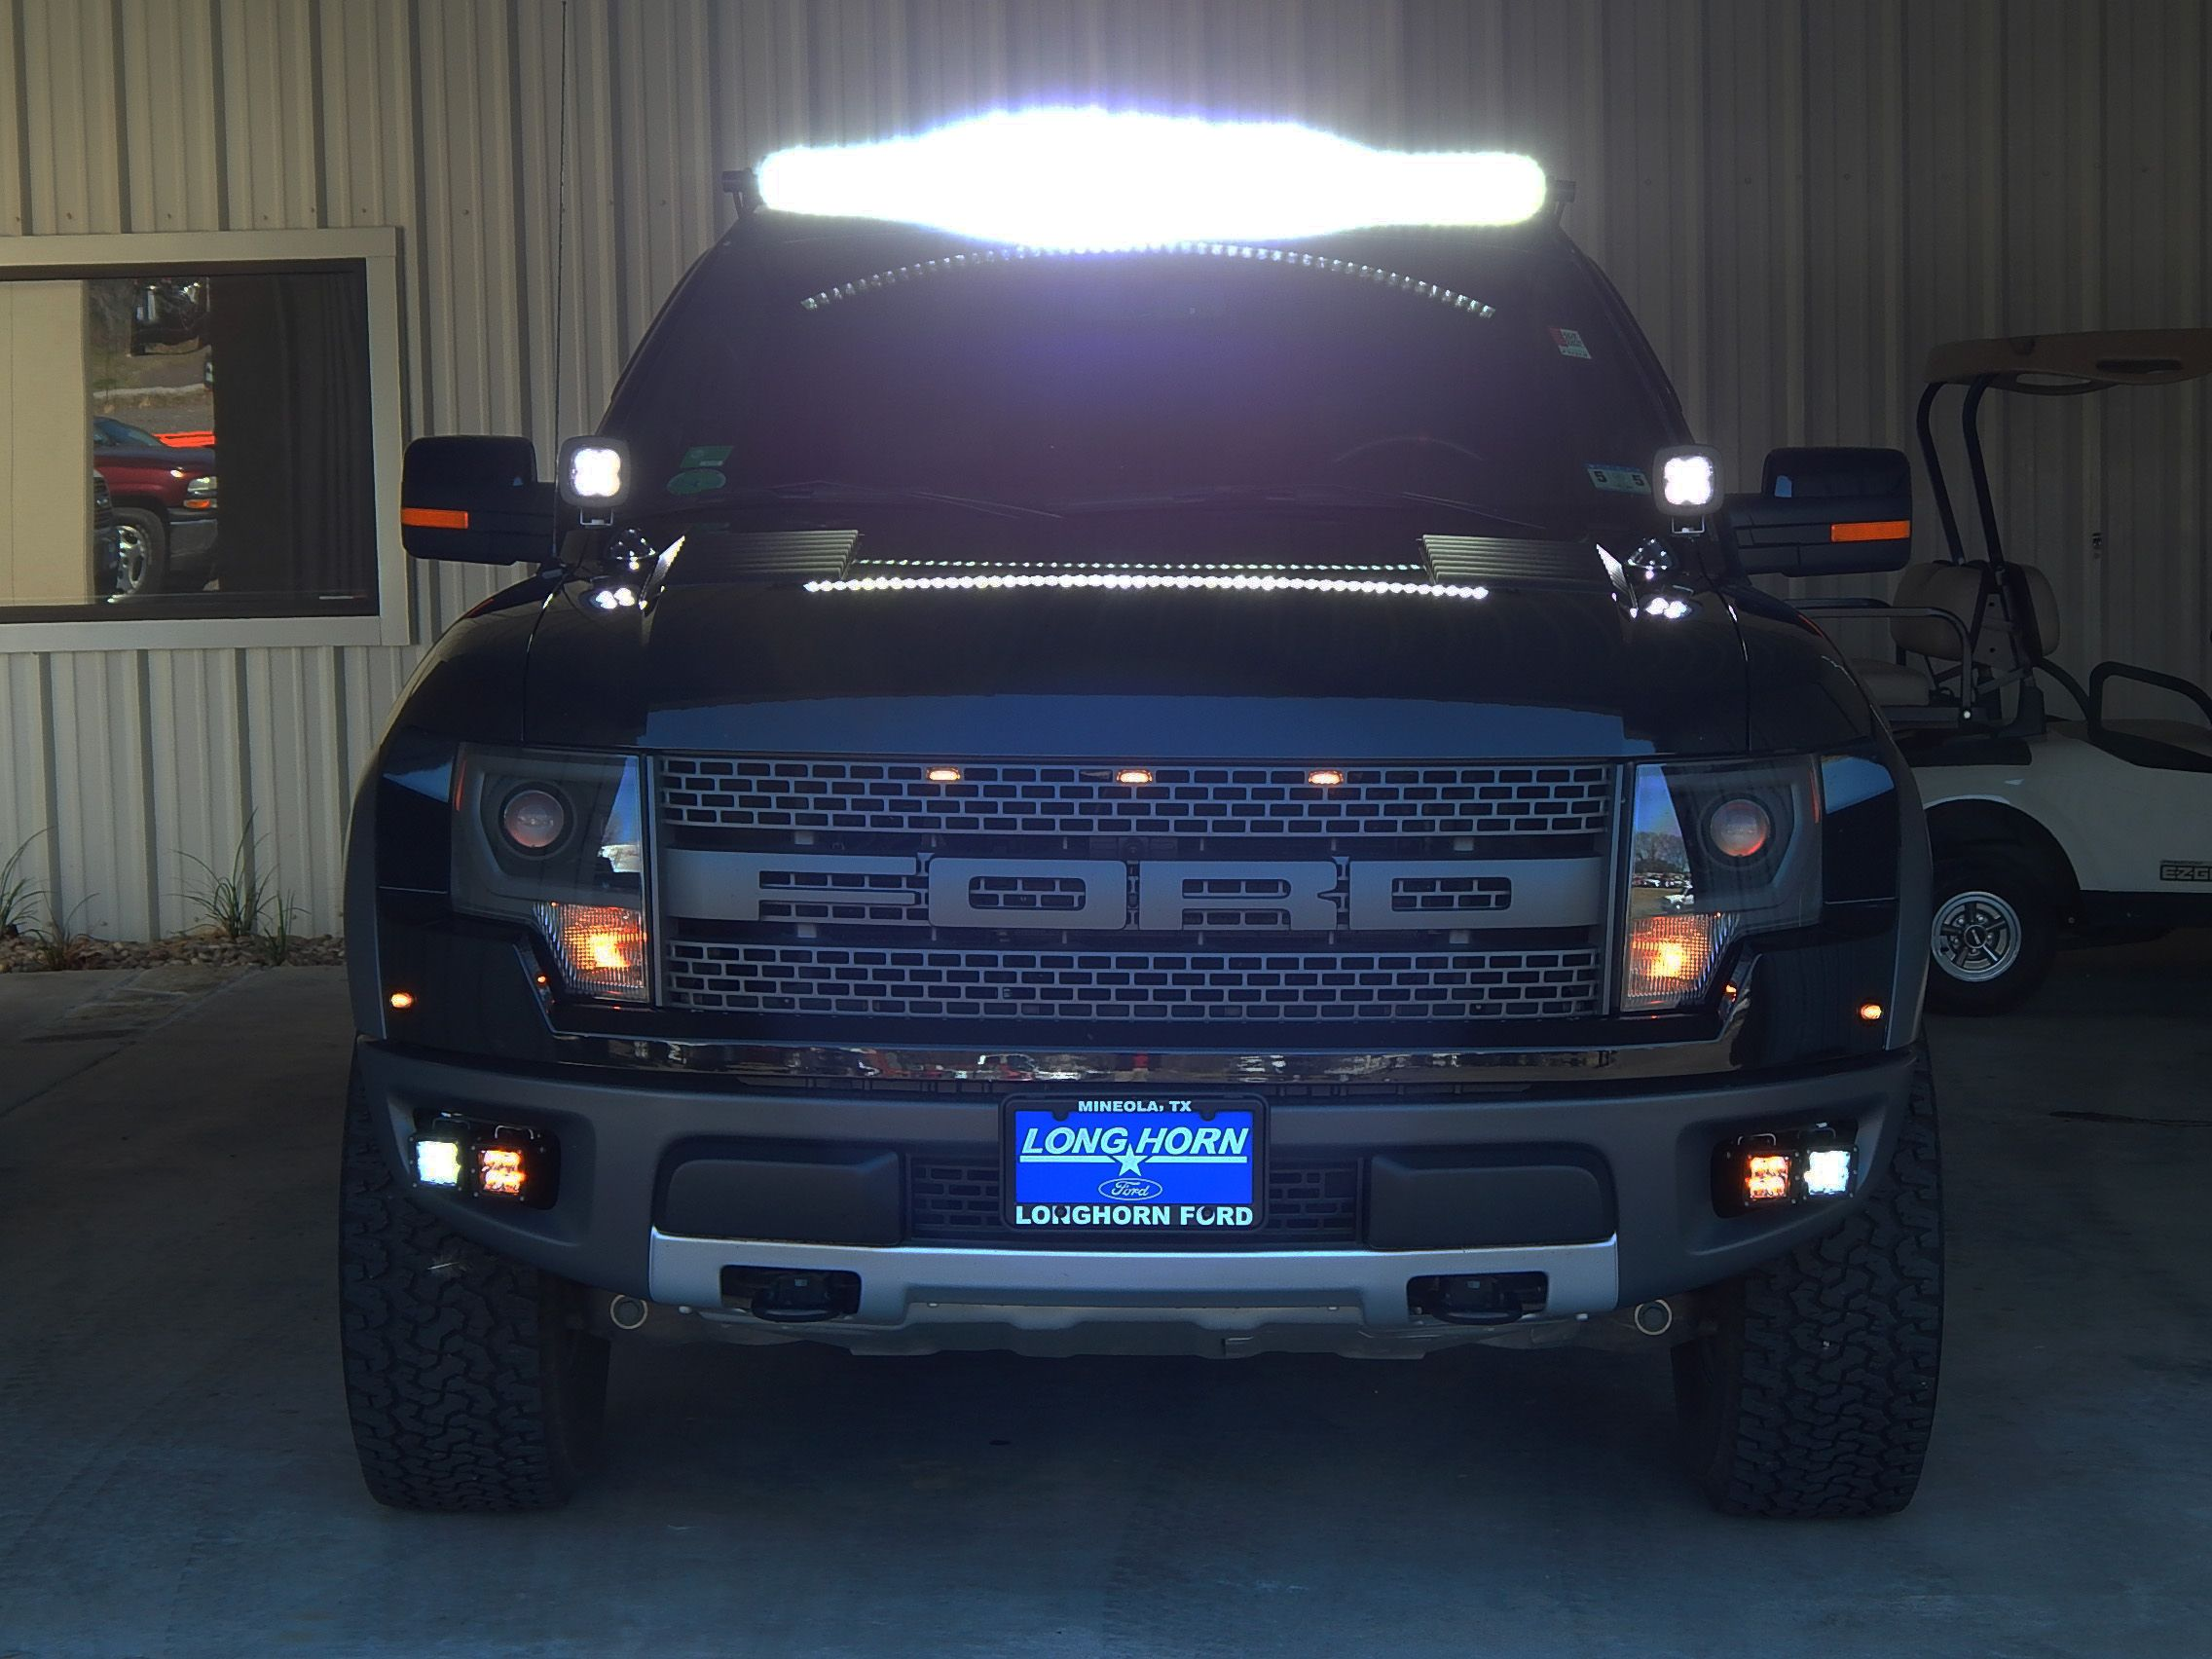 2014 ford f150 svt raptor with led light kits this beast has a 2014 ford f150 svt raptor with led light kits this beast has a bright side with an led light bar on the roof led spotlights and led backup lights raptor mozeypictures Choice Image